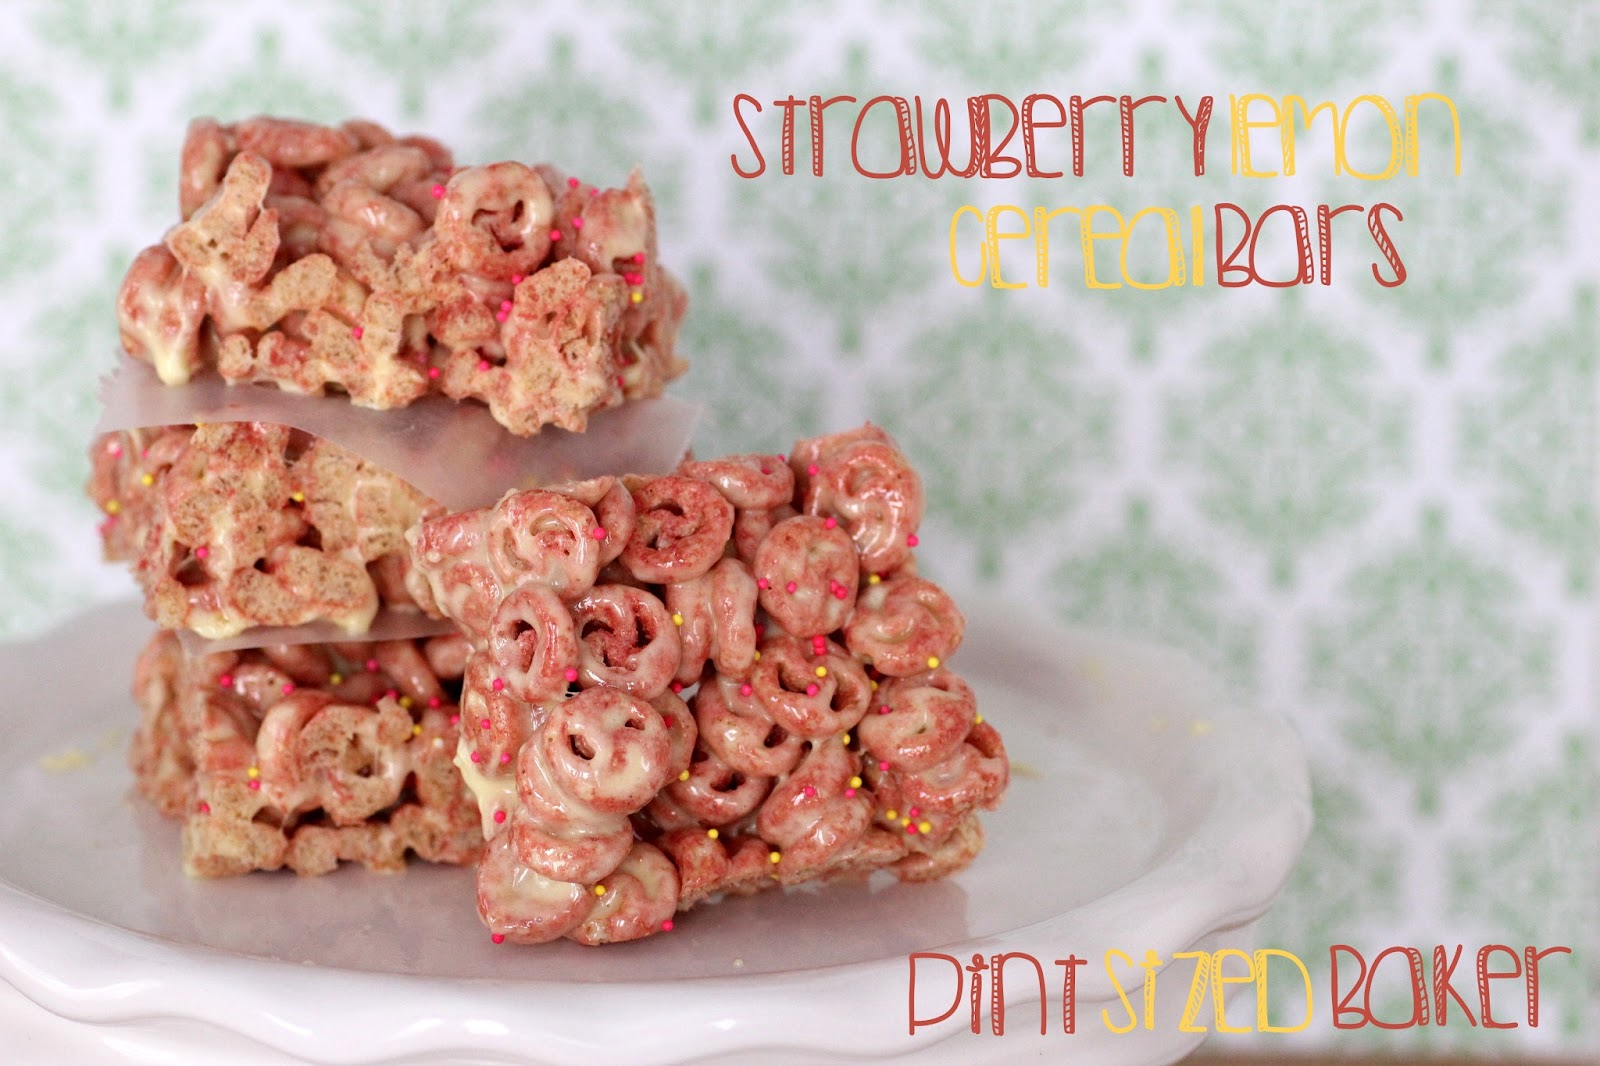 Strawberry lemon cereal bars pint sized baker strawberry lemon cereal bars ccuart Gallery